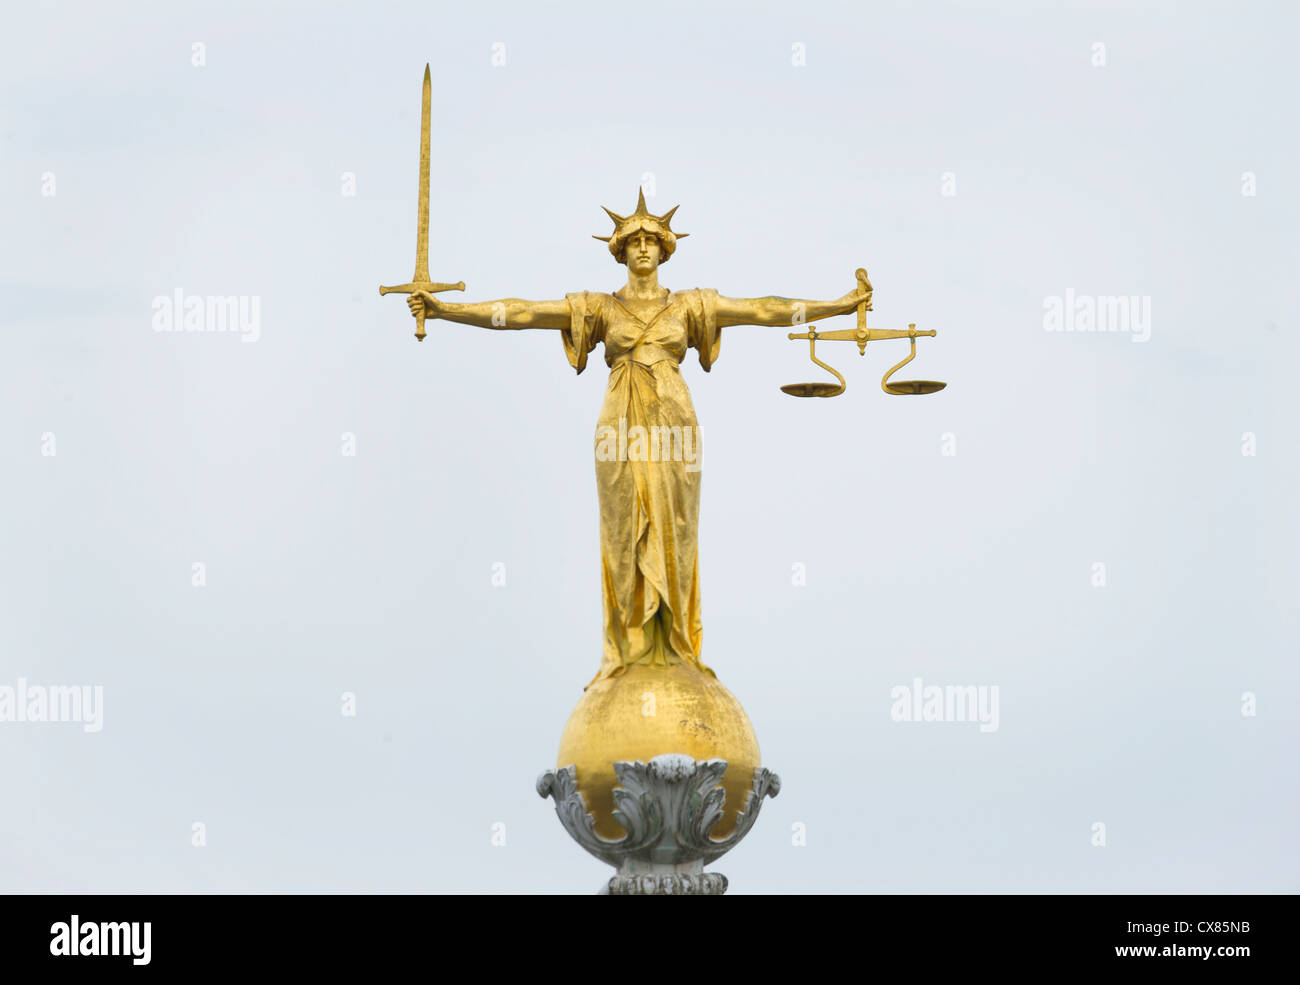 the gold bronze lady justice statue with sword and scales